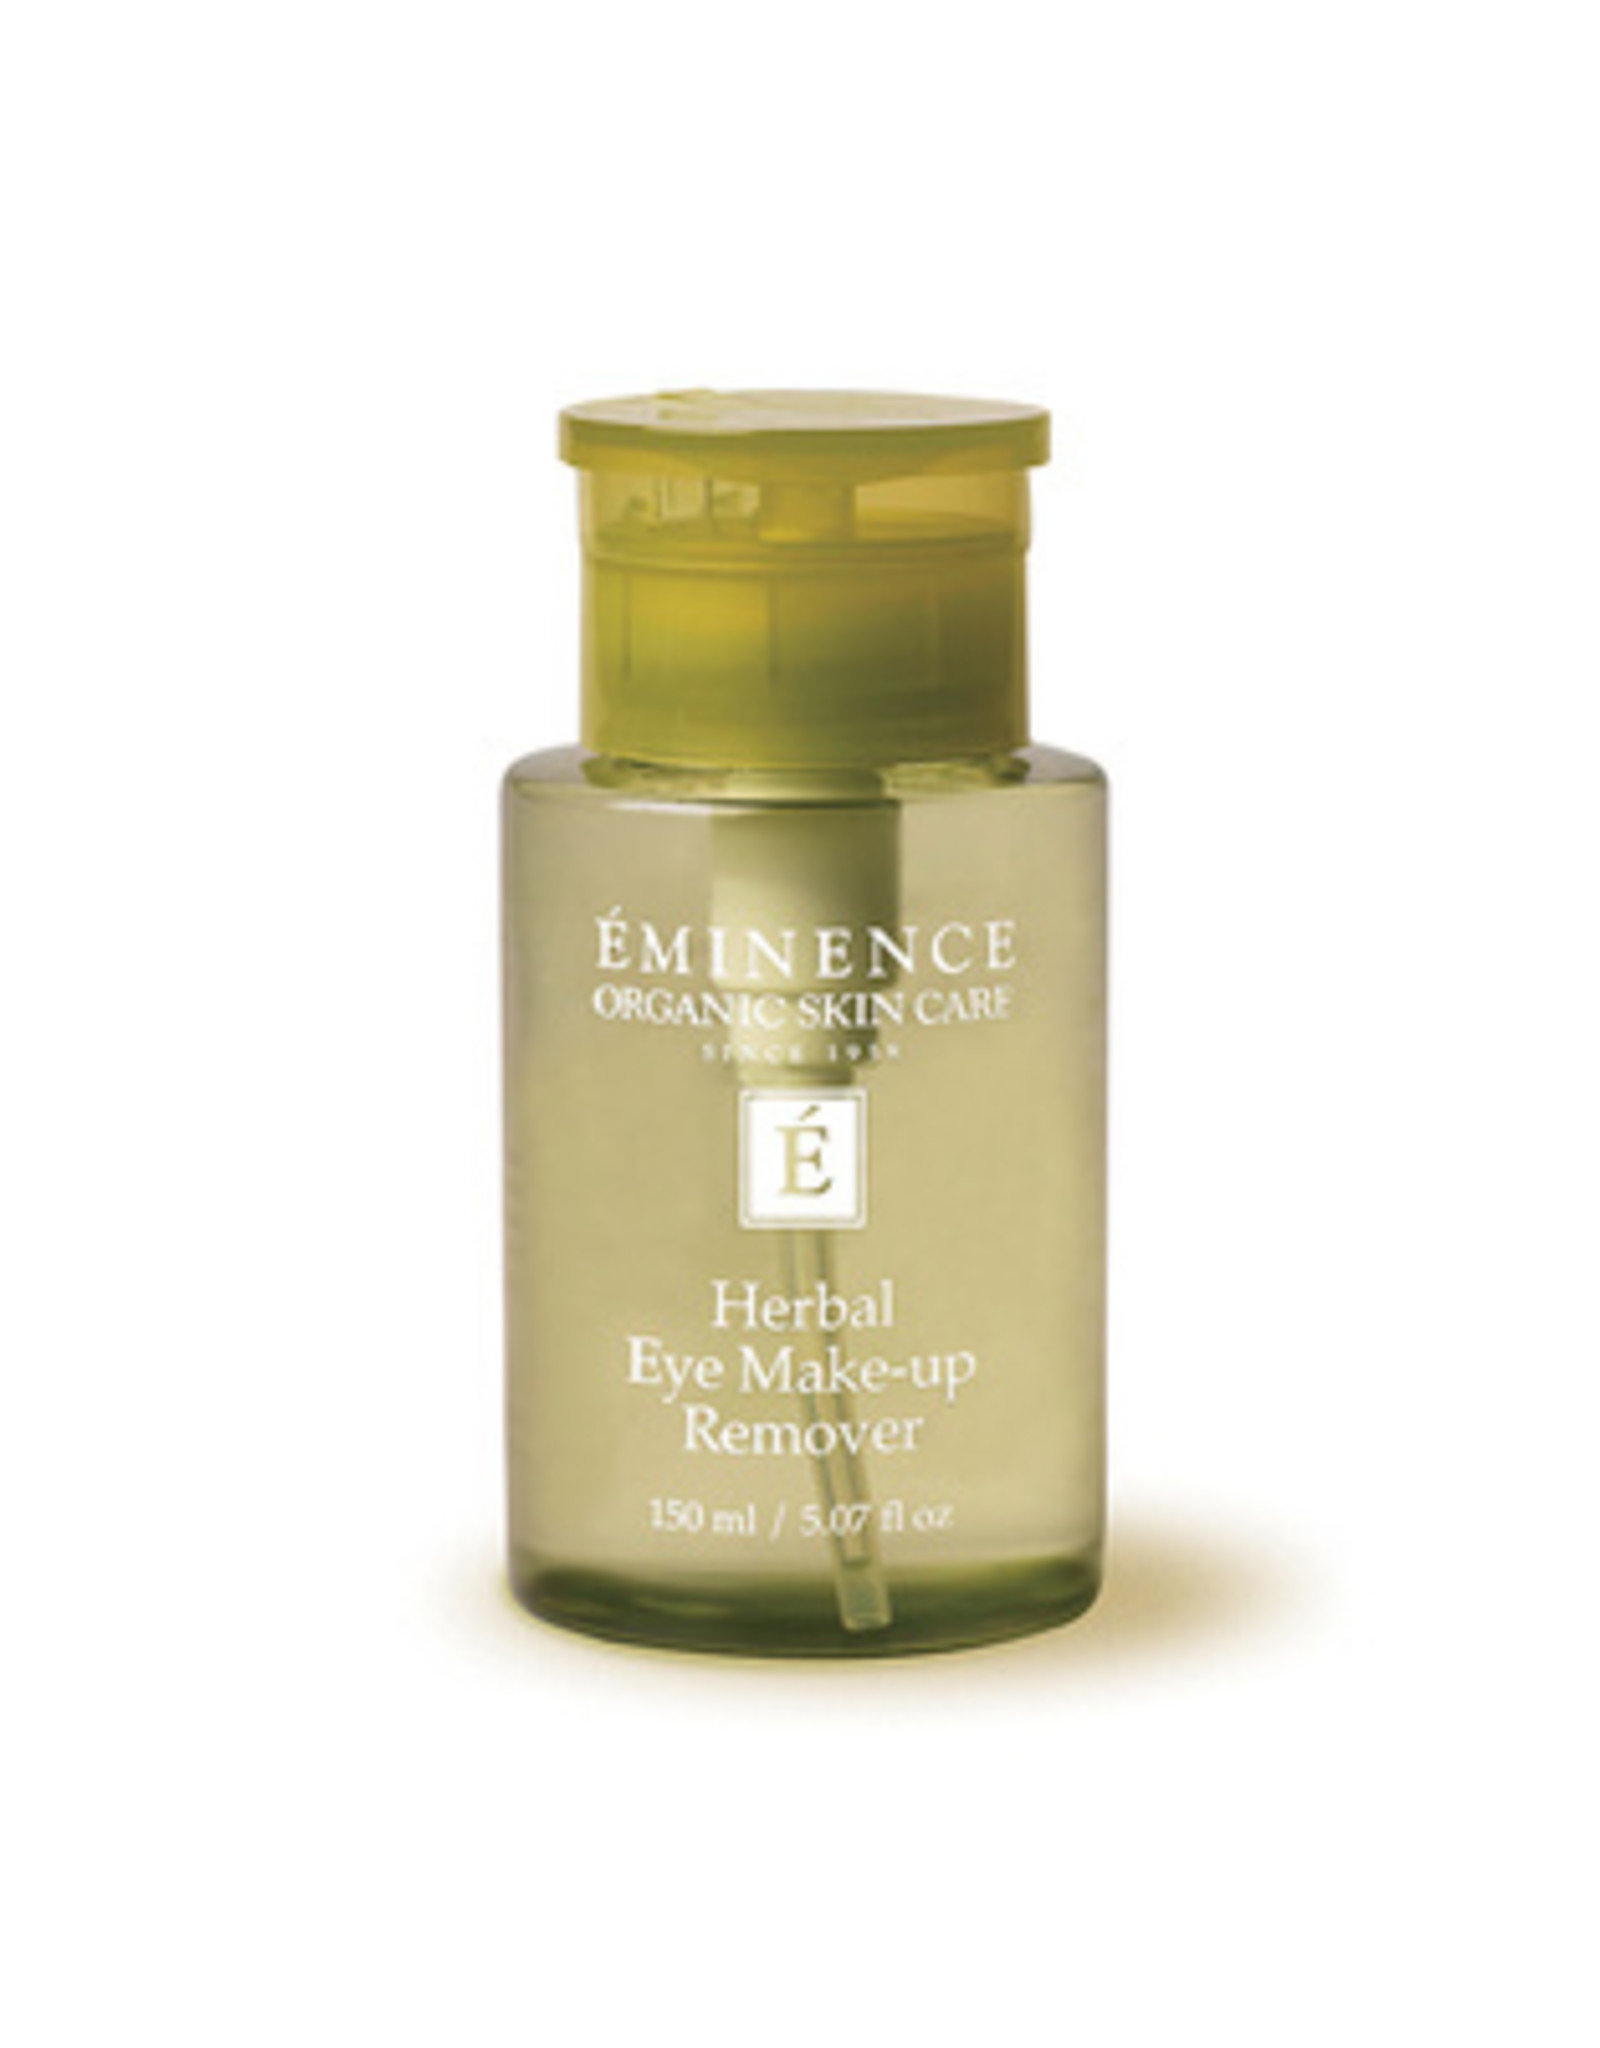 Eminence Organic Skin Care Herbal Eye Make-up Remover